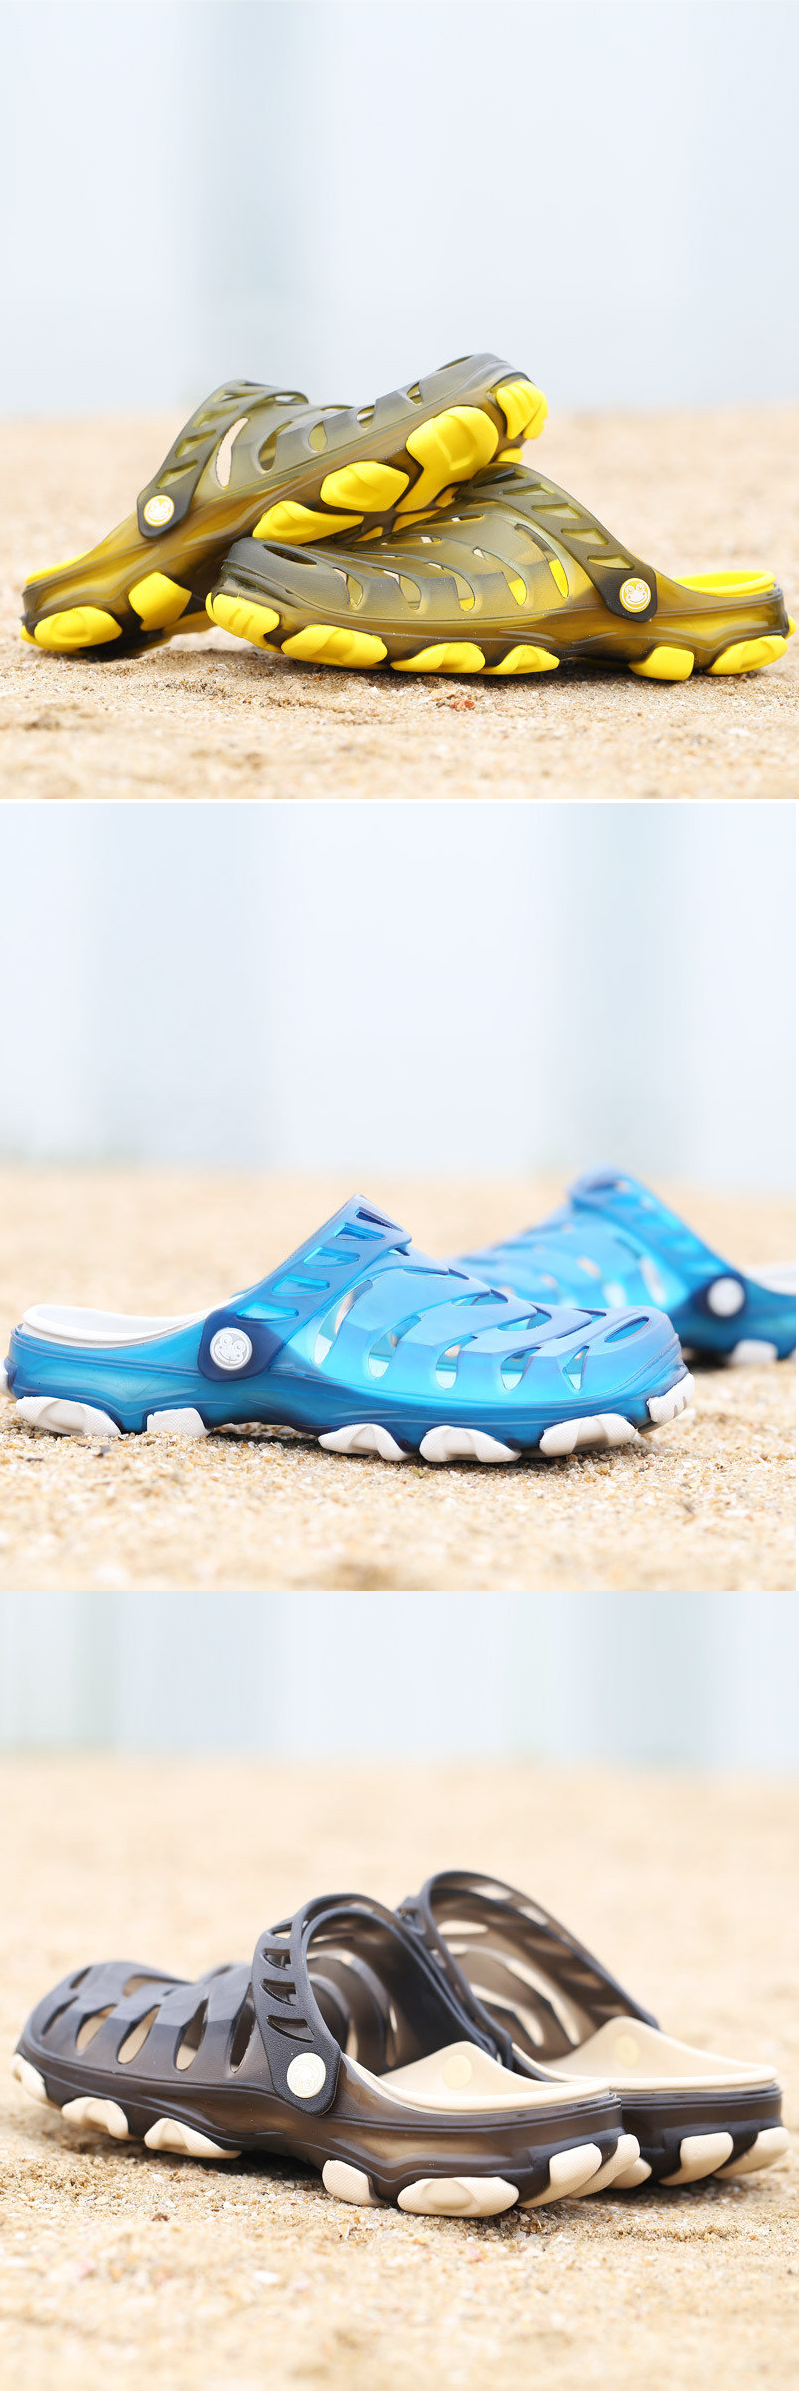 US$17.60 Men Hole Breathable Soft Beach Sandals Light Waterproof Shoes